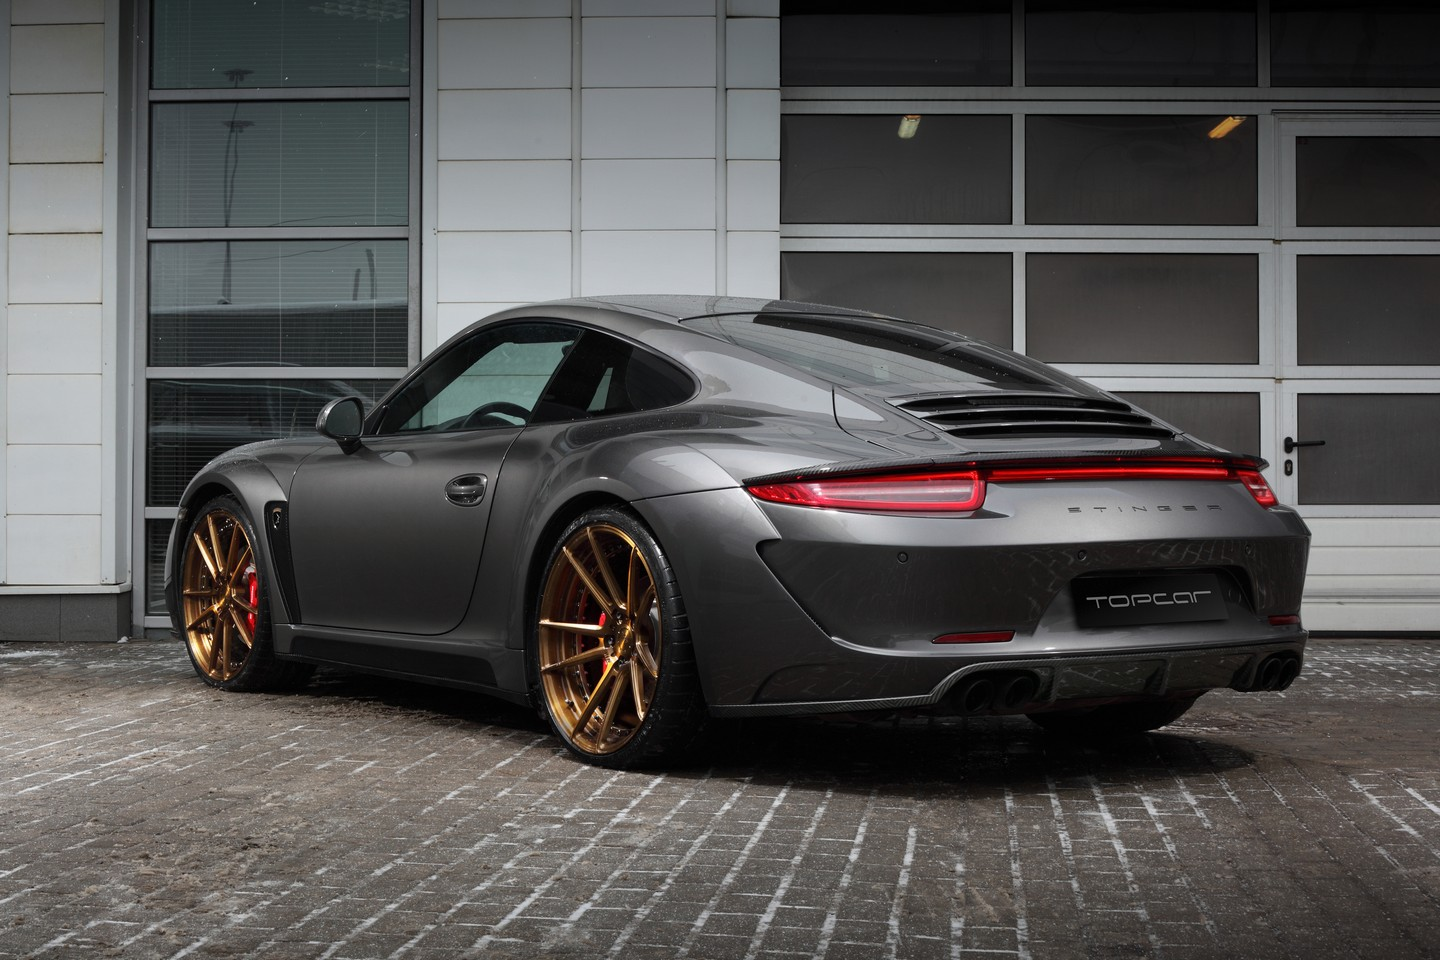 porsche 911 carrera 4s stinger by topcar carz tuning. Black Bedroom Furniture Sets. Home Design Ideas